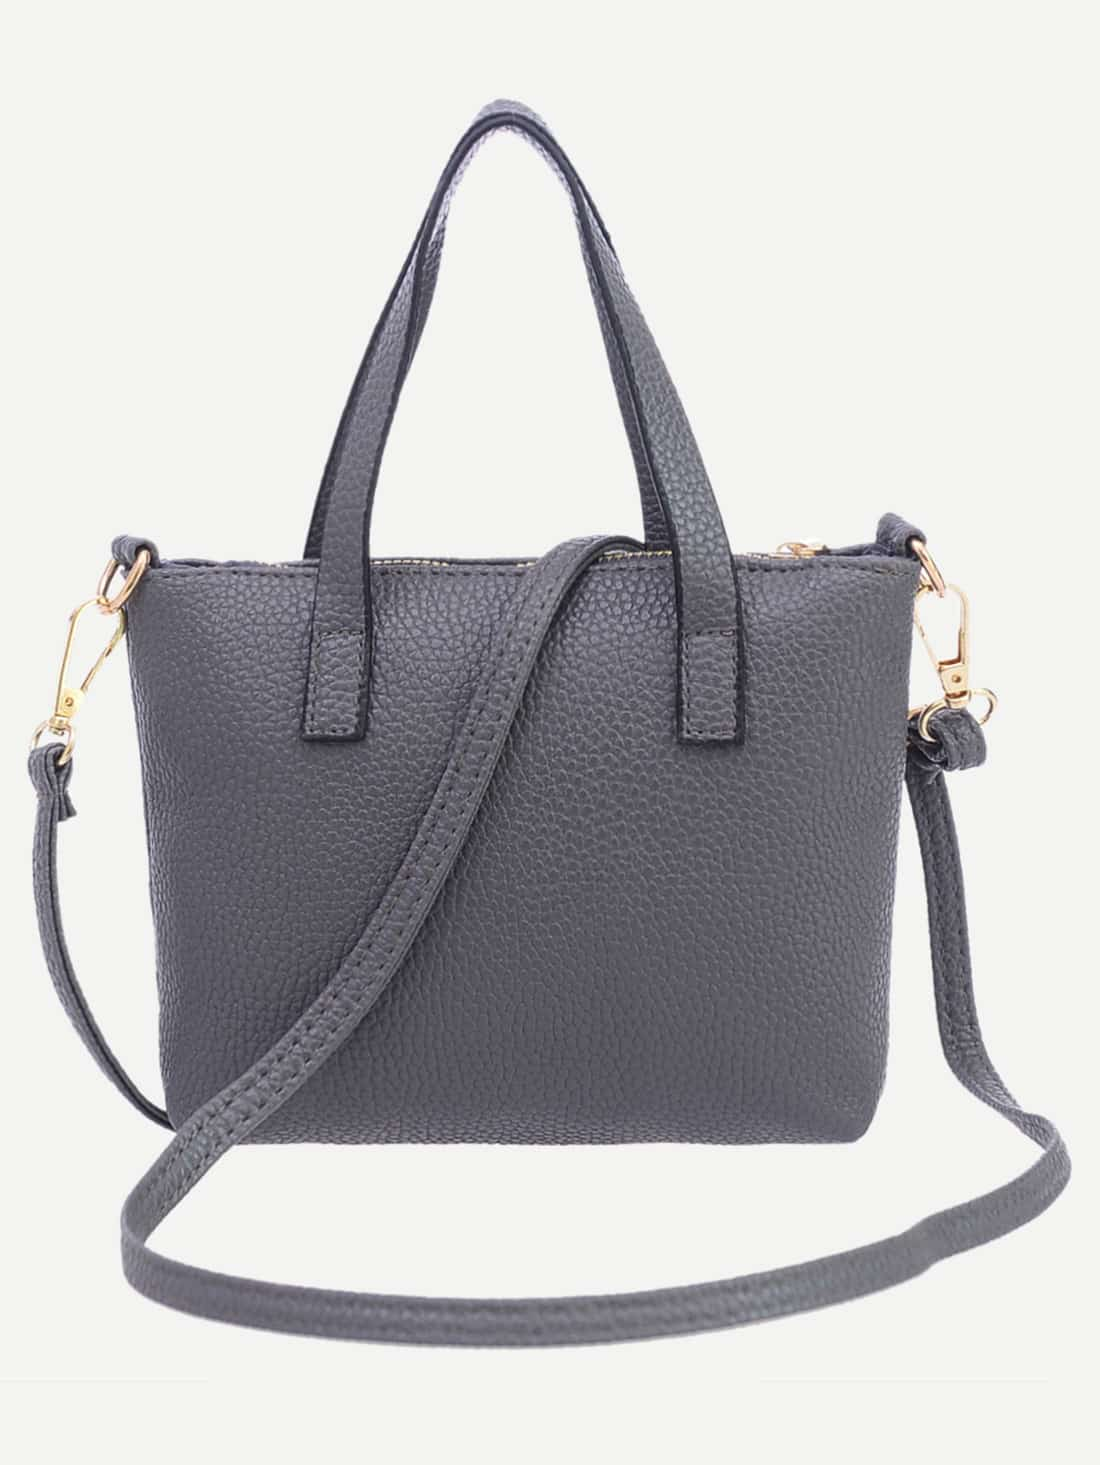 Grey Pebbled Faux Leather Tote Bag With Strap